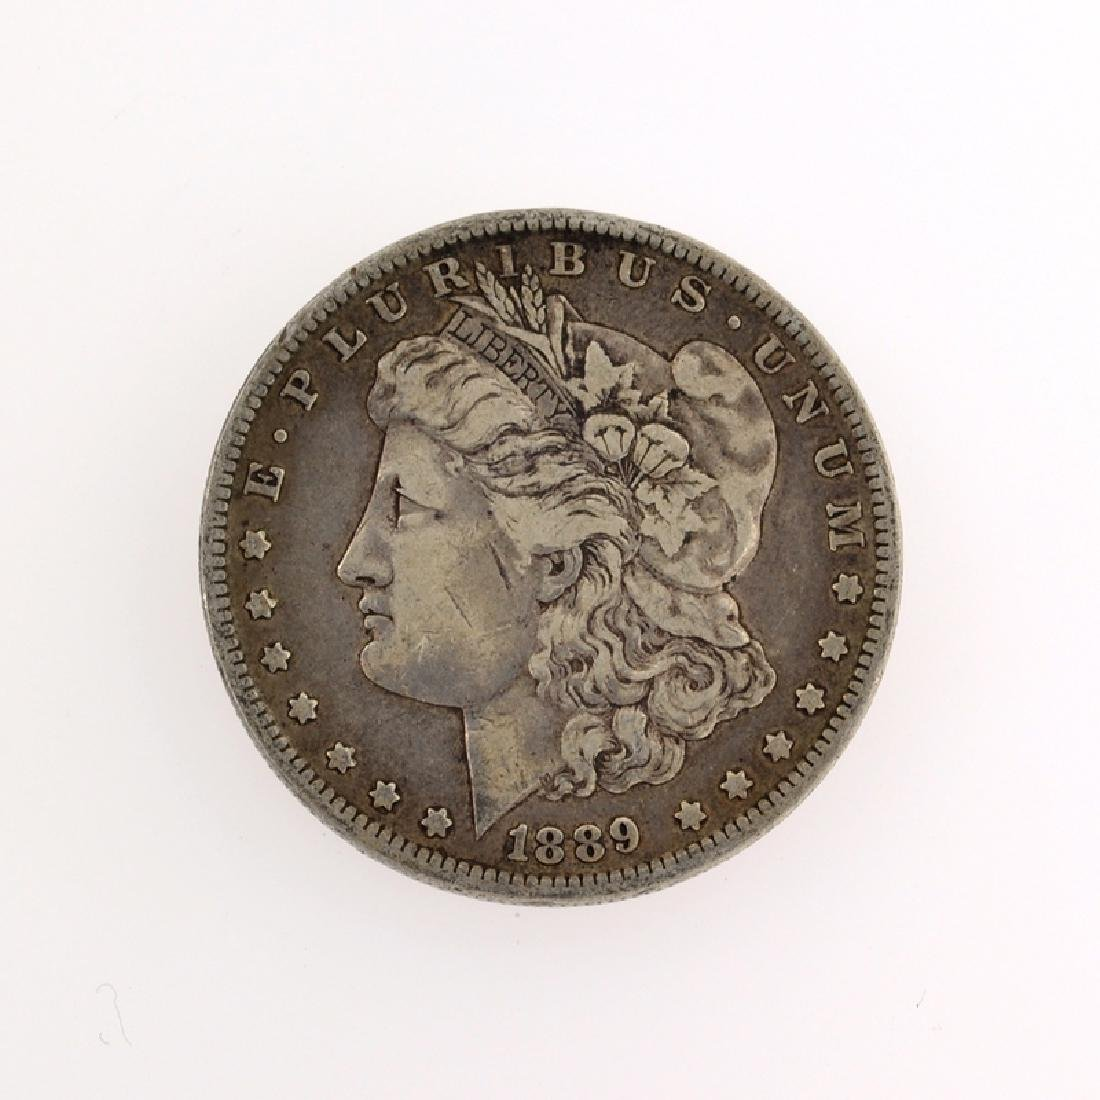 1889 Morgan Silver Dollar Coin